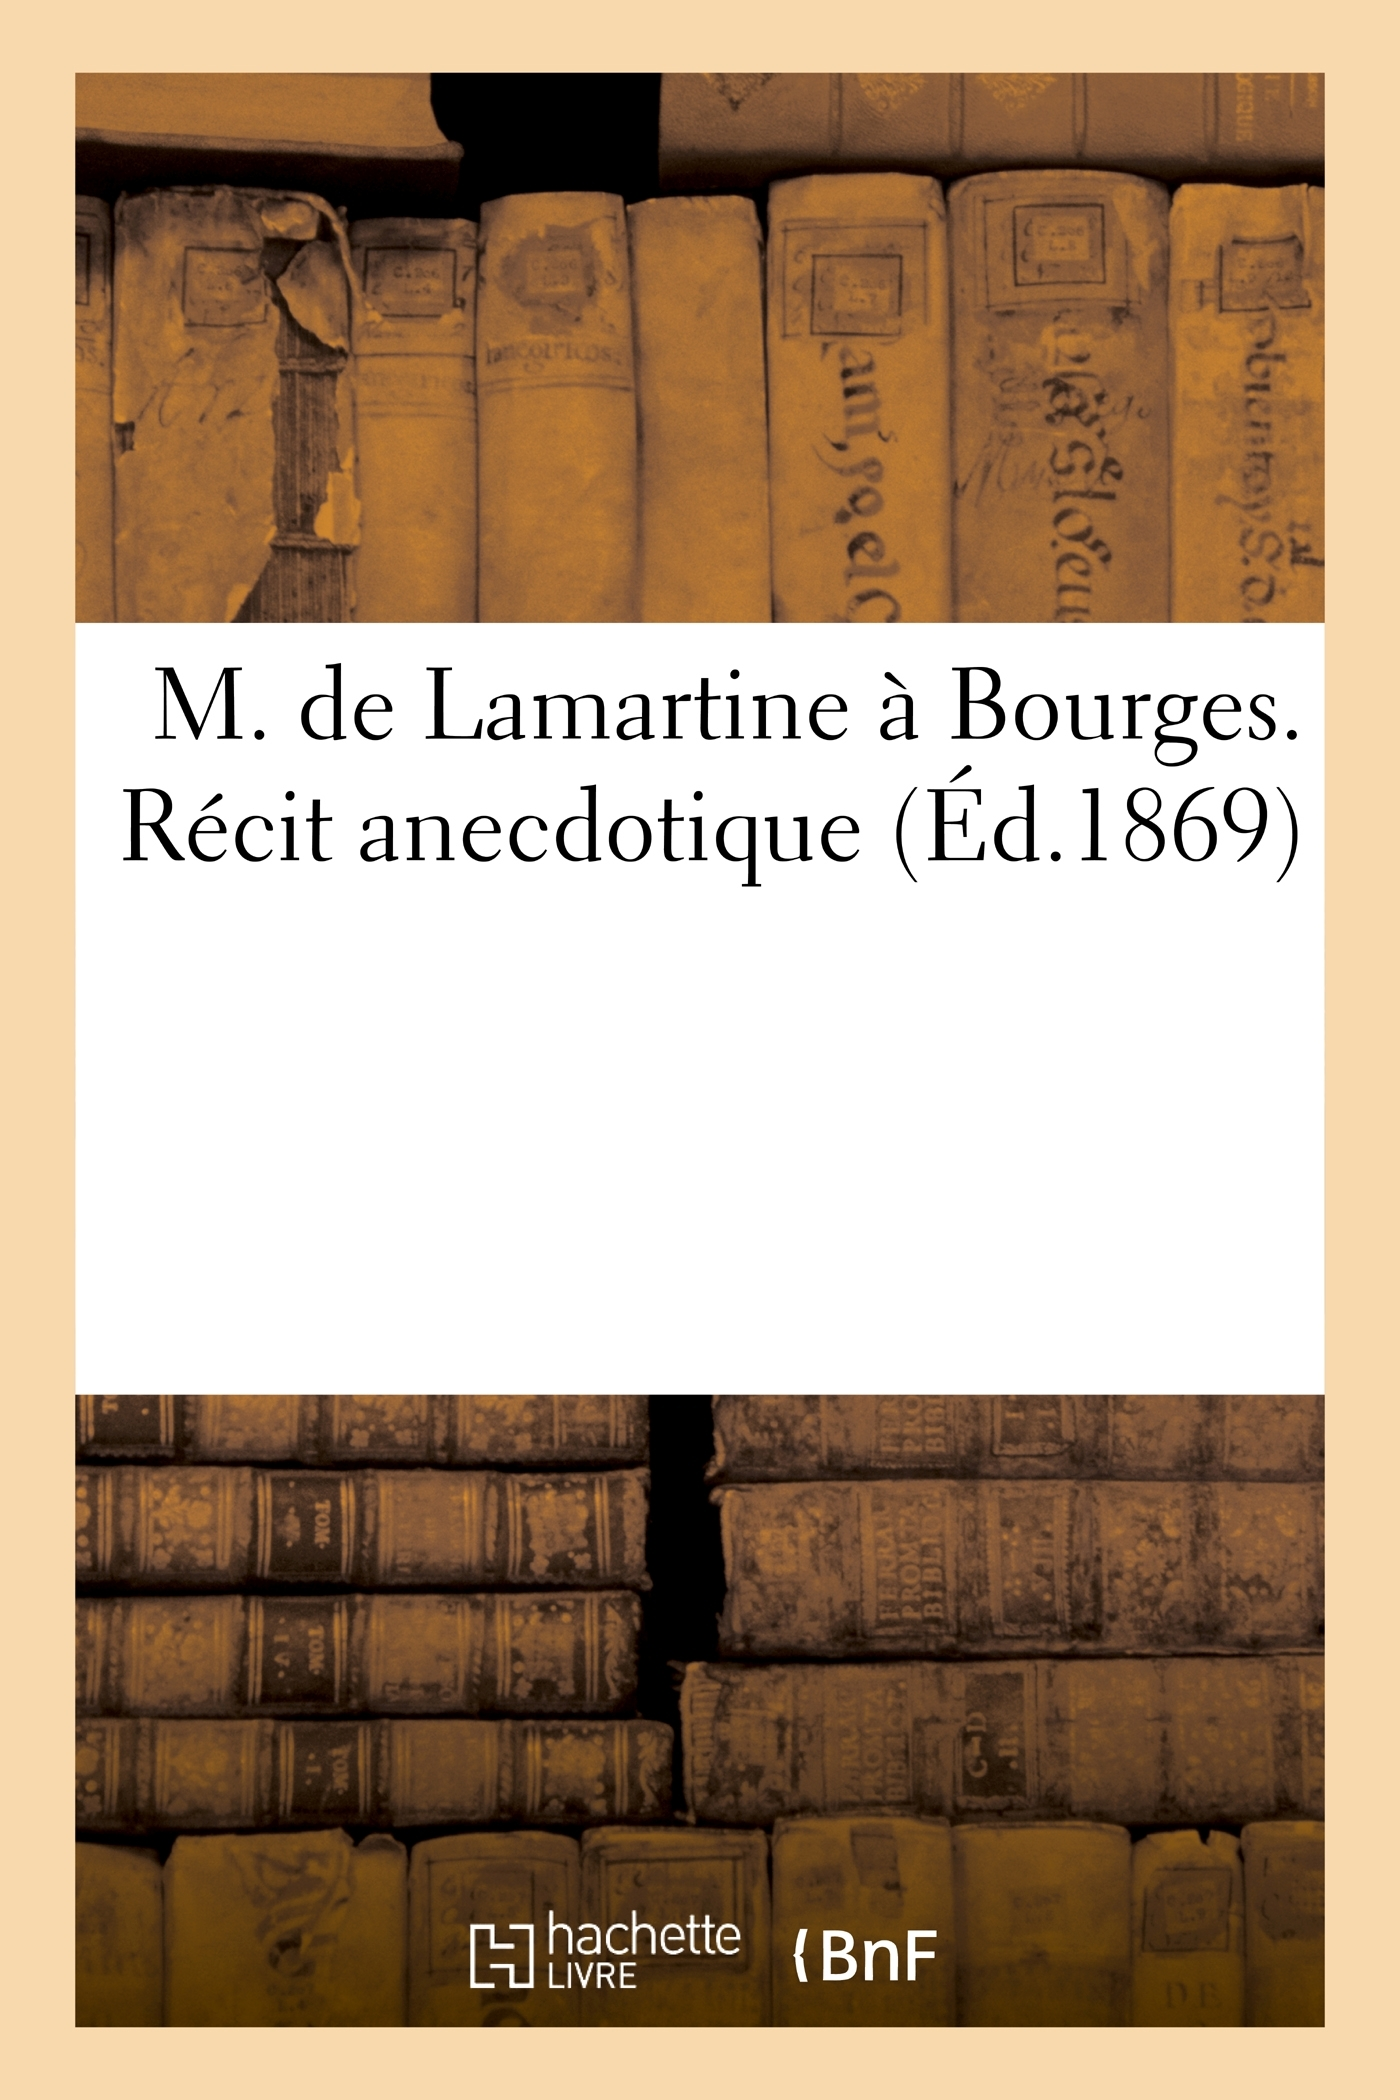 M. DE LAMARTINE A BOURGES. RECIT ANECDOTIQUE